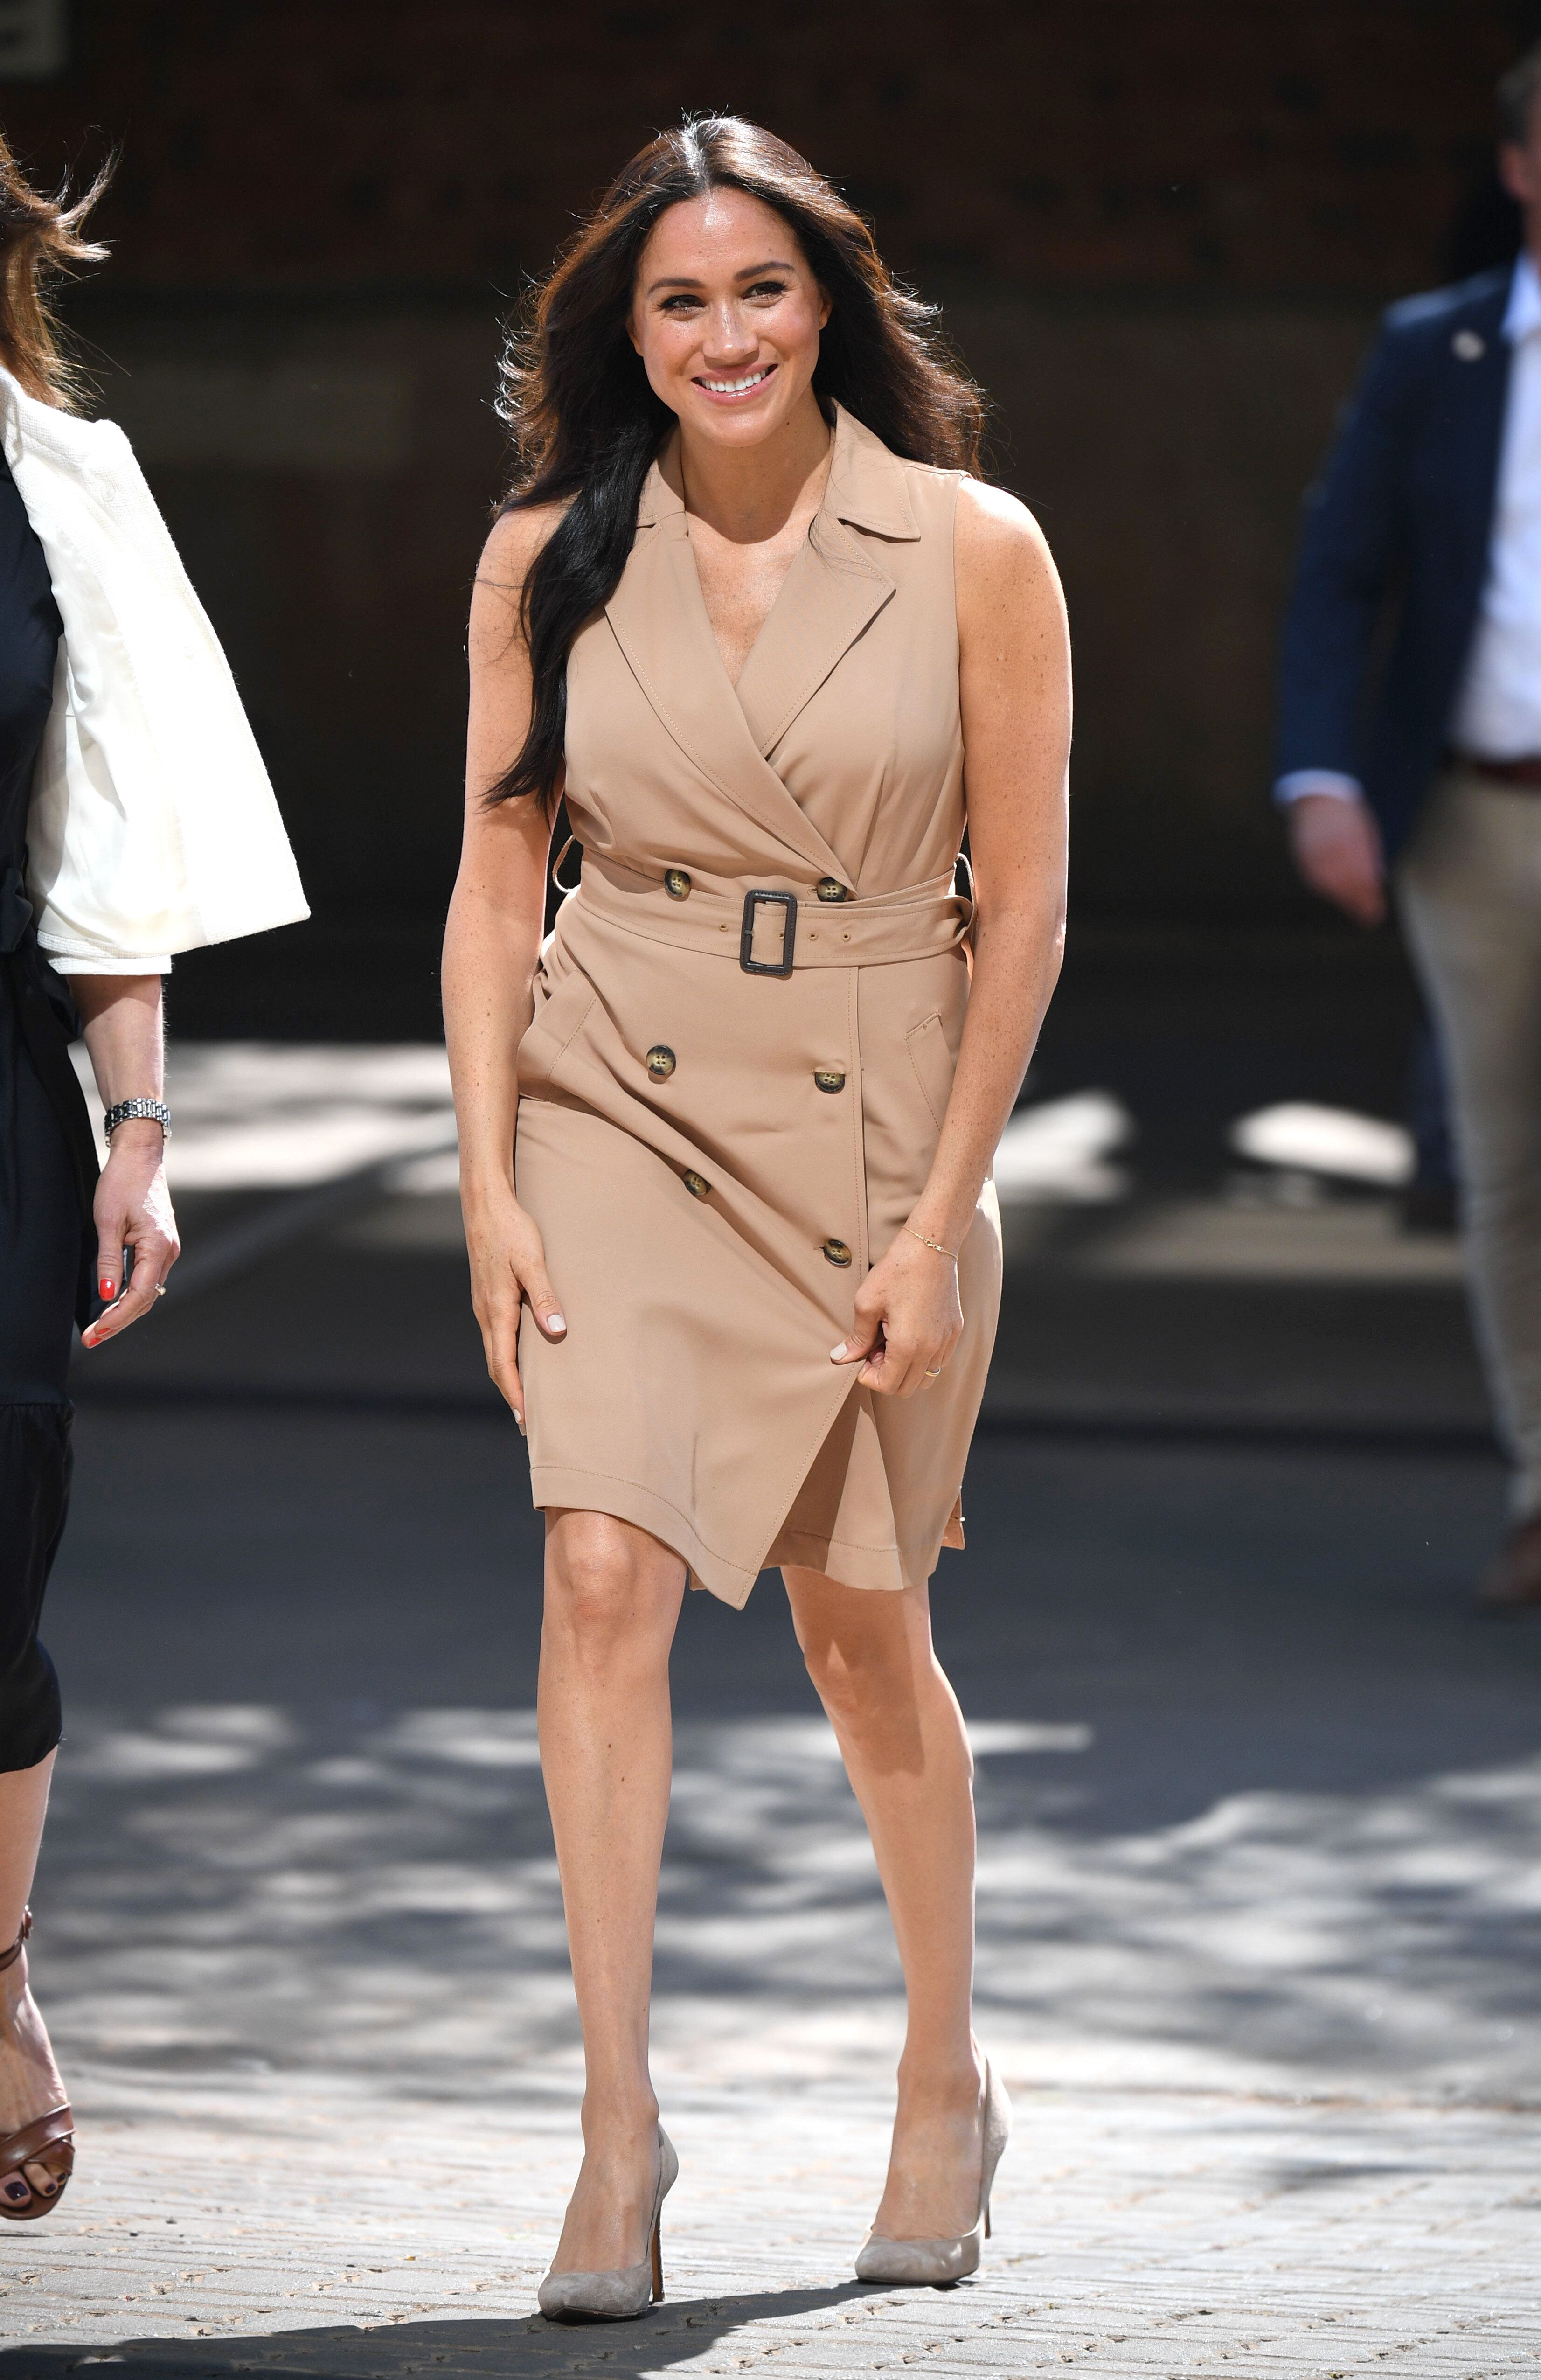 The University of Johannesburg stop is one of many by the Duke and Duchess of Sussex during their 10-day tour of South Africa